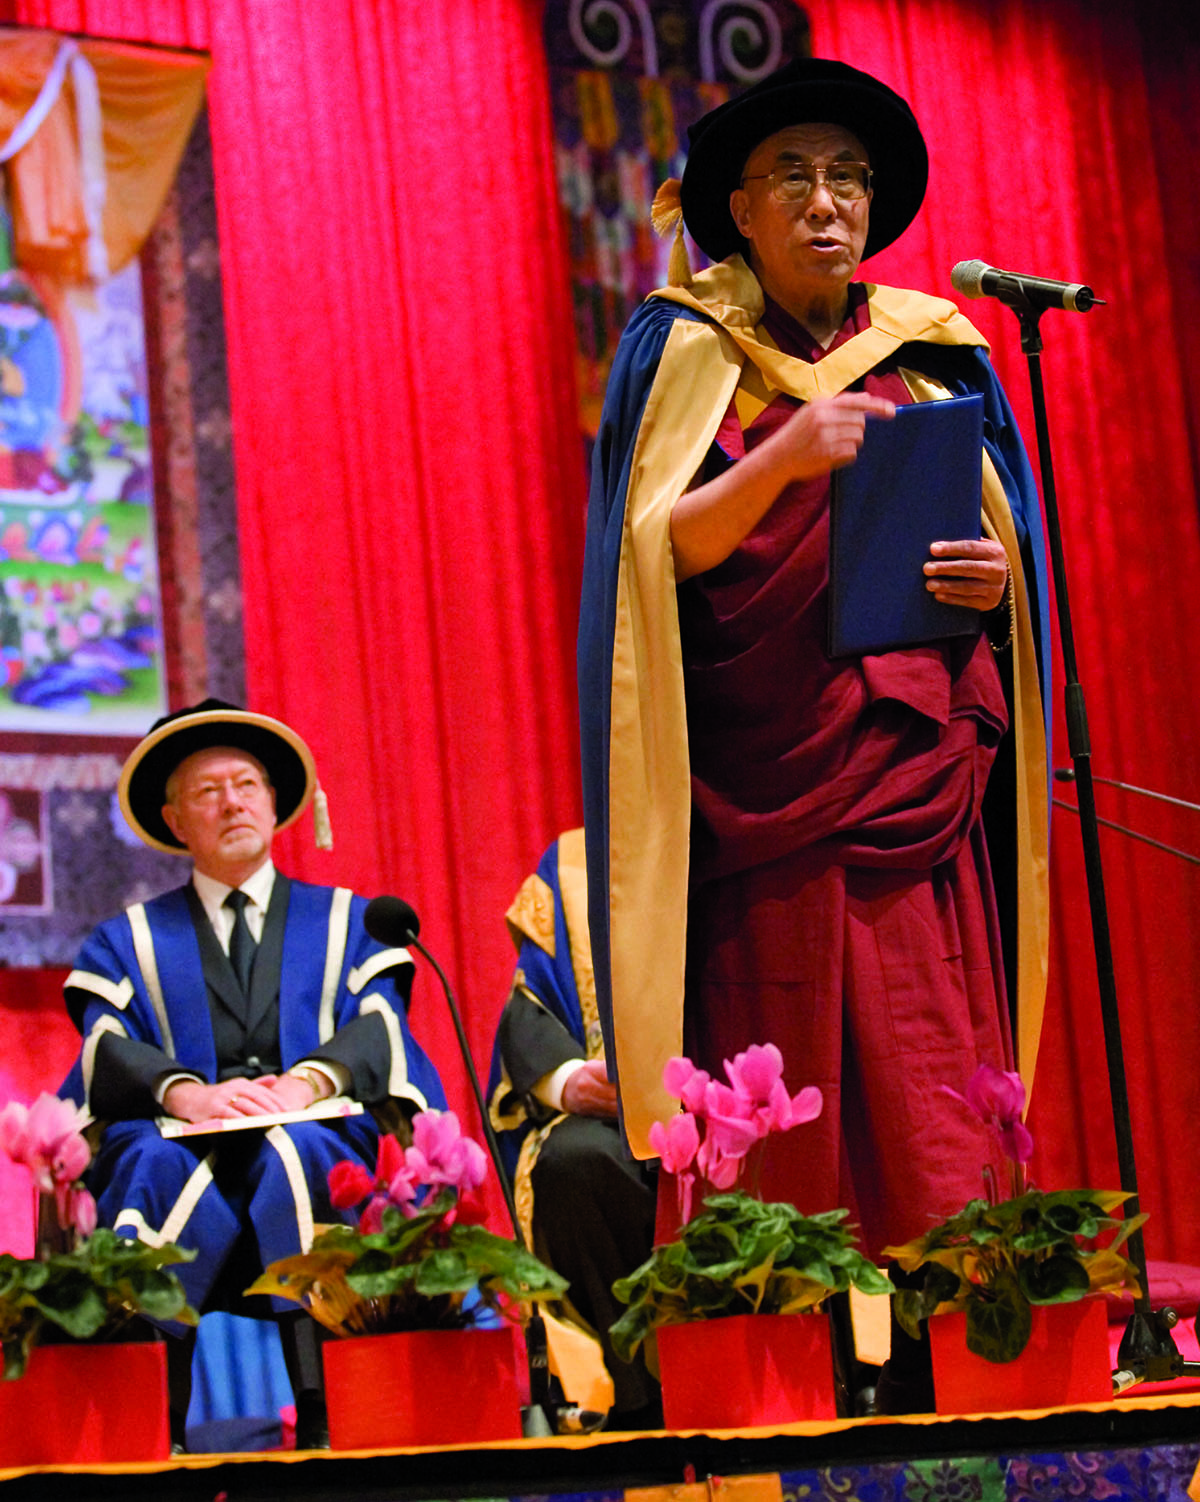 His Holiness the Dalai Lama delivering his acceptance speech at the Southern Cross University on receiving a Doctor Honoris Causa, Melbourne, Australia, 8 June 2007